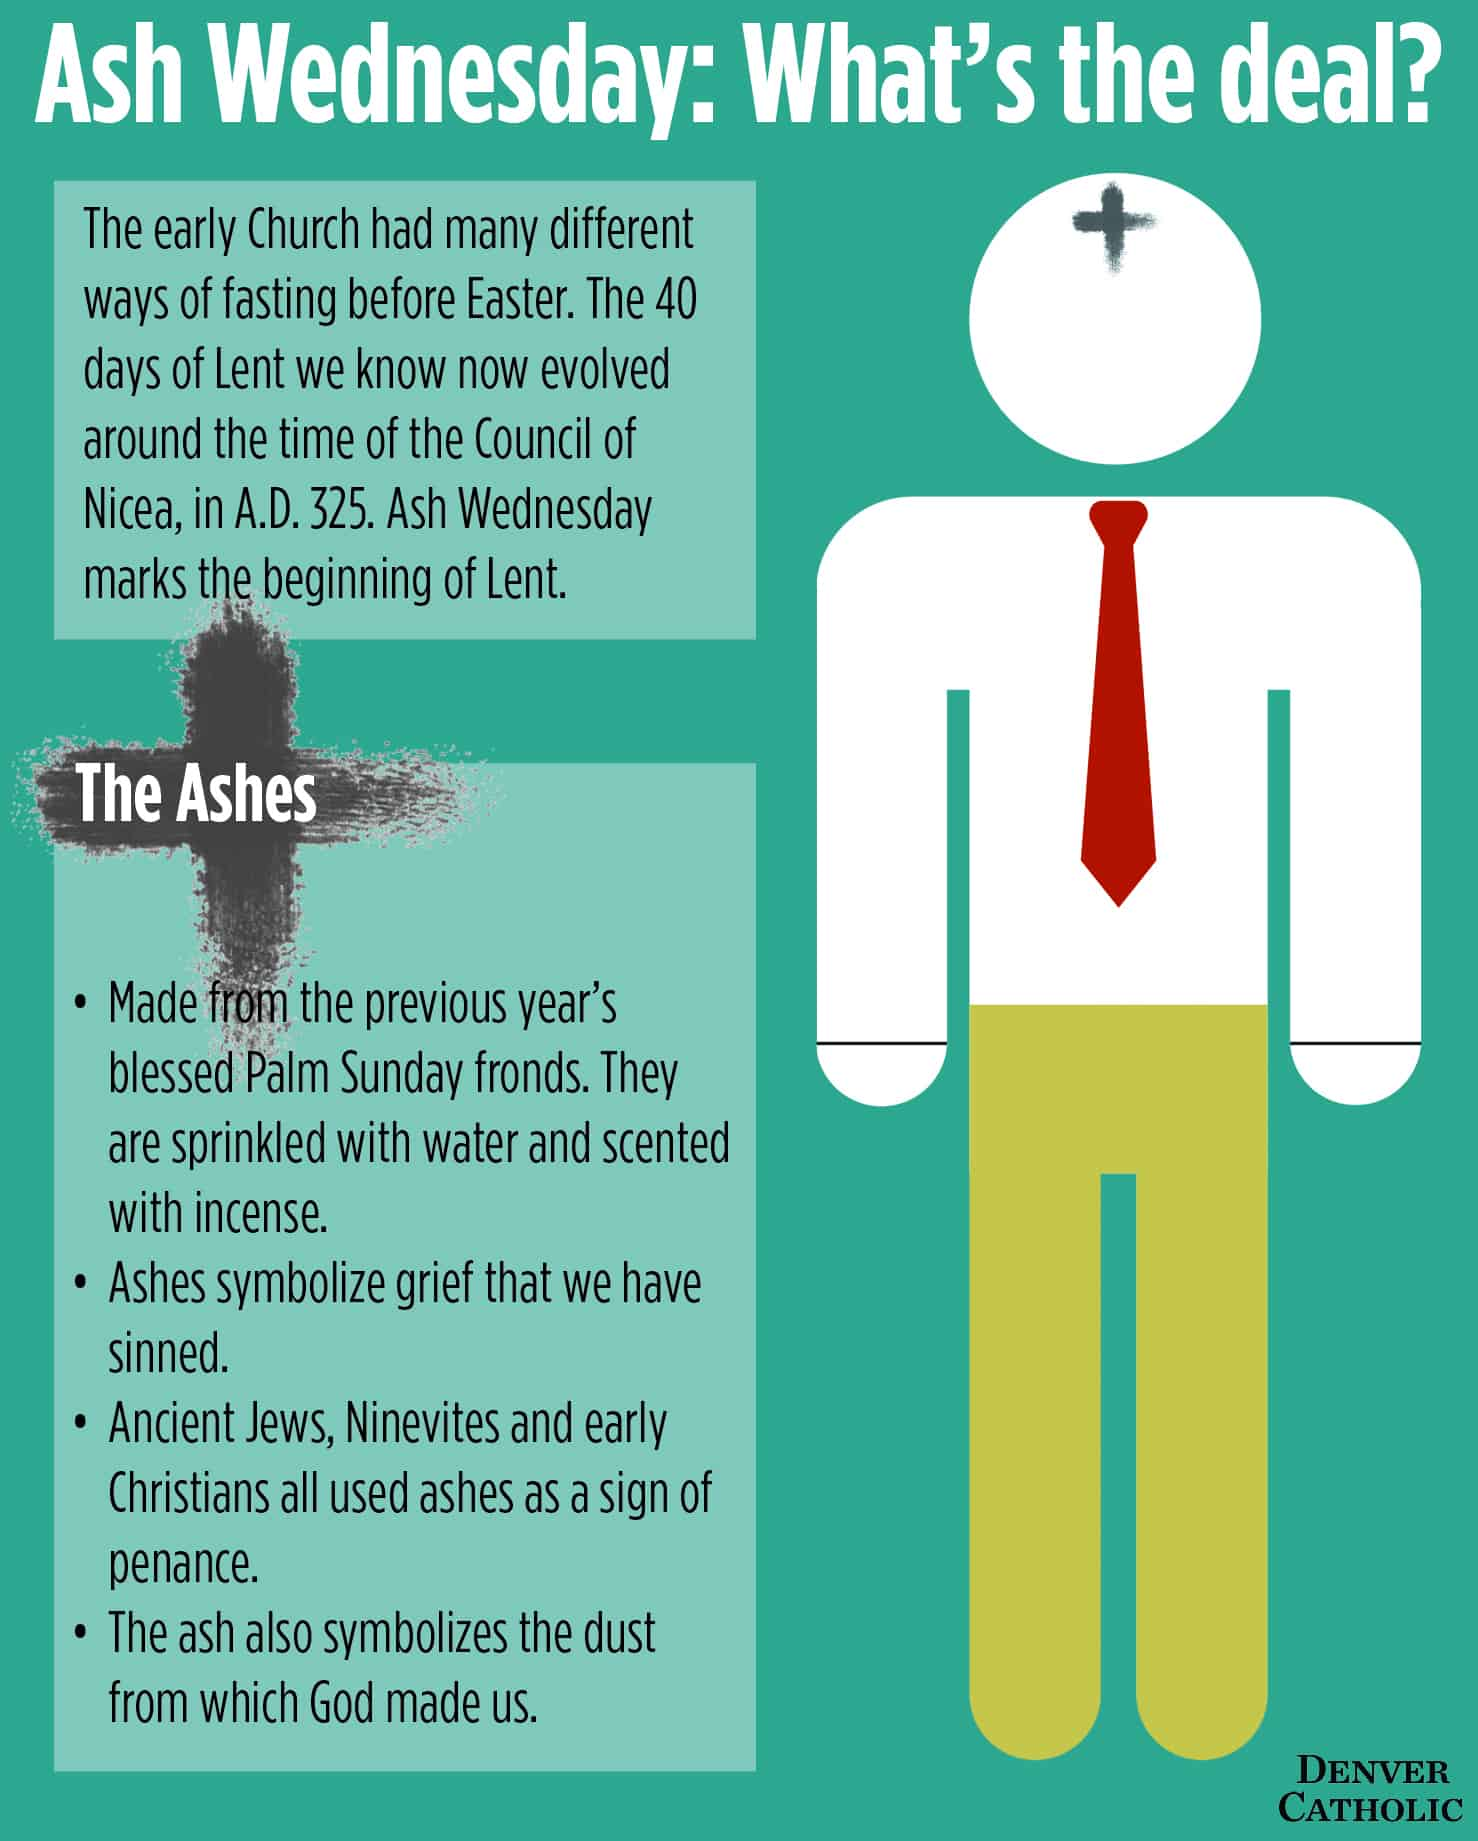 Ash Wednesday Infographic updated